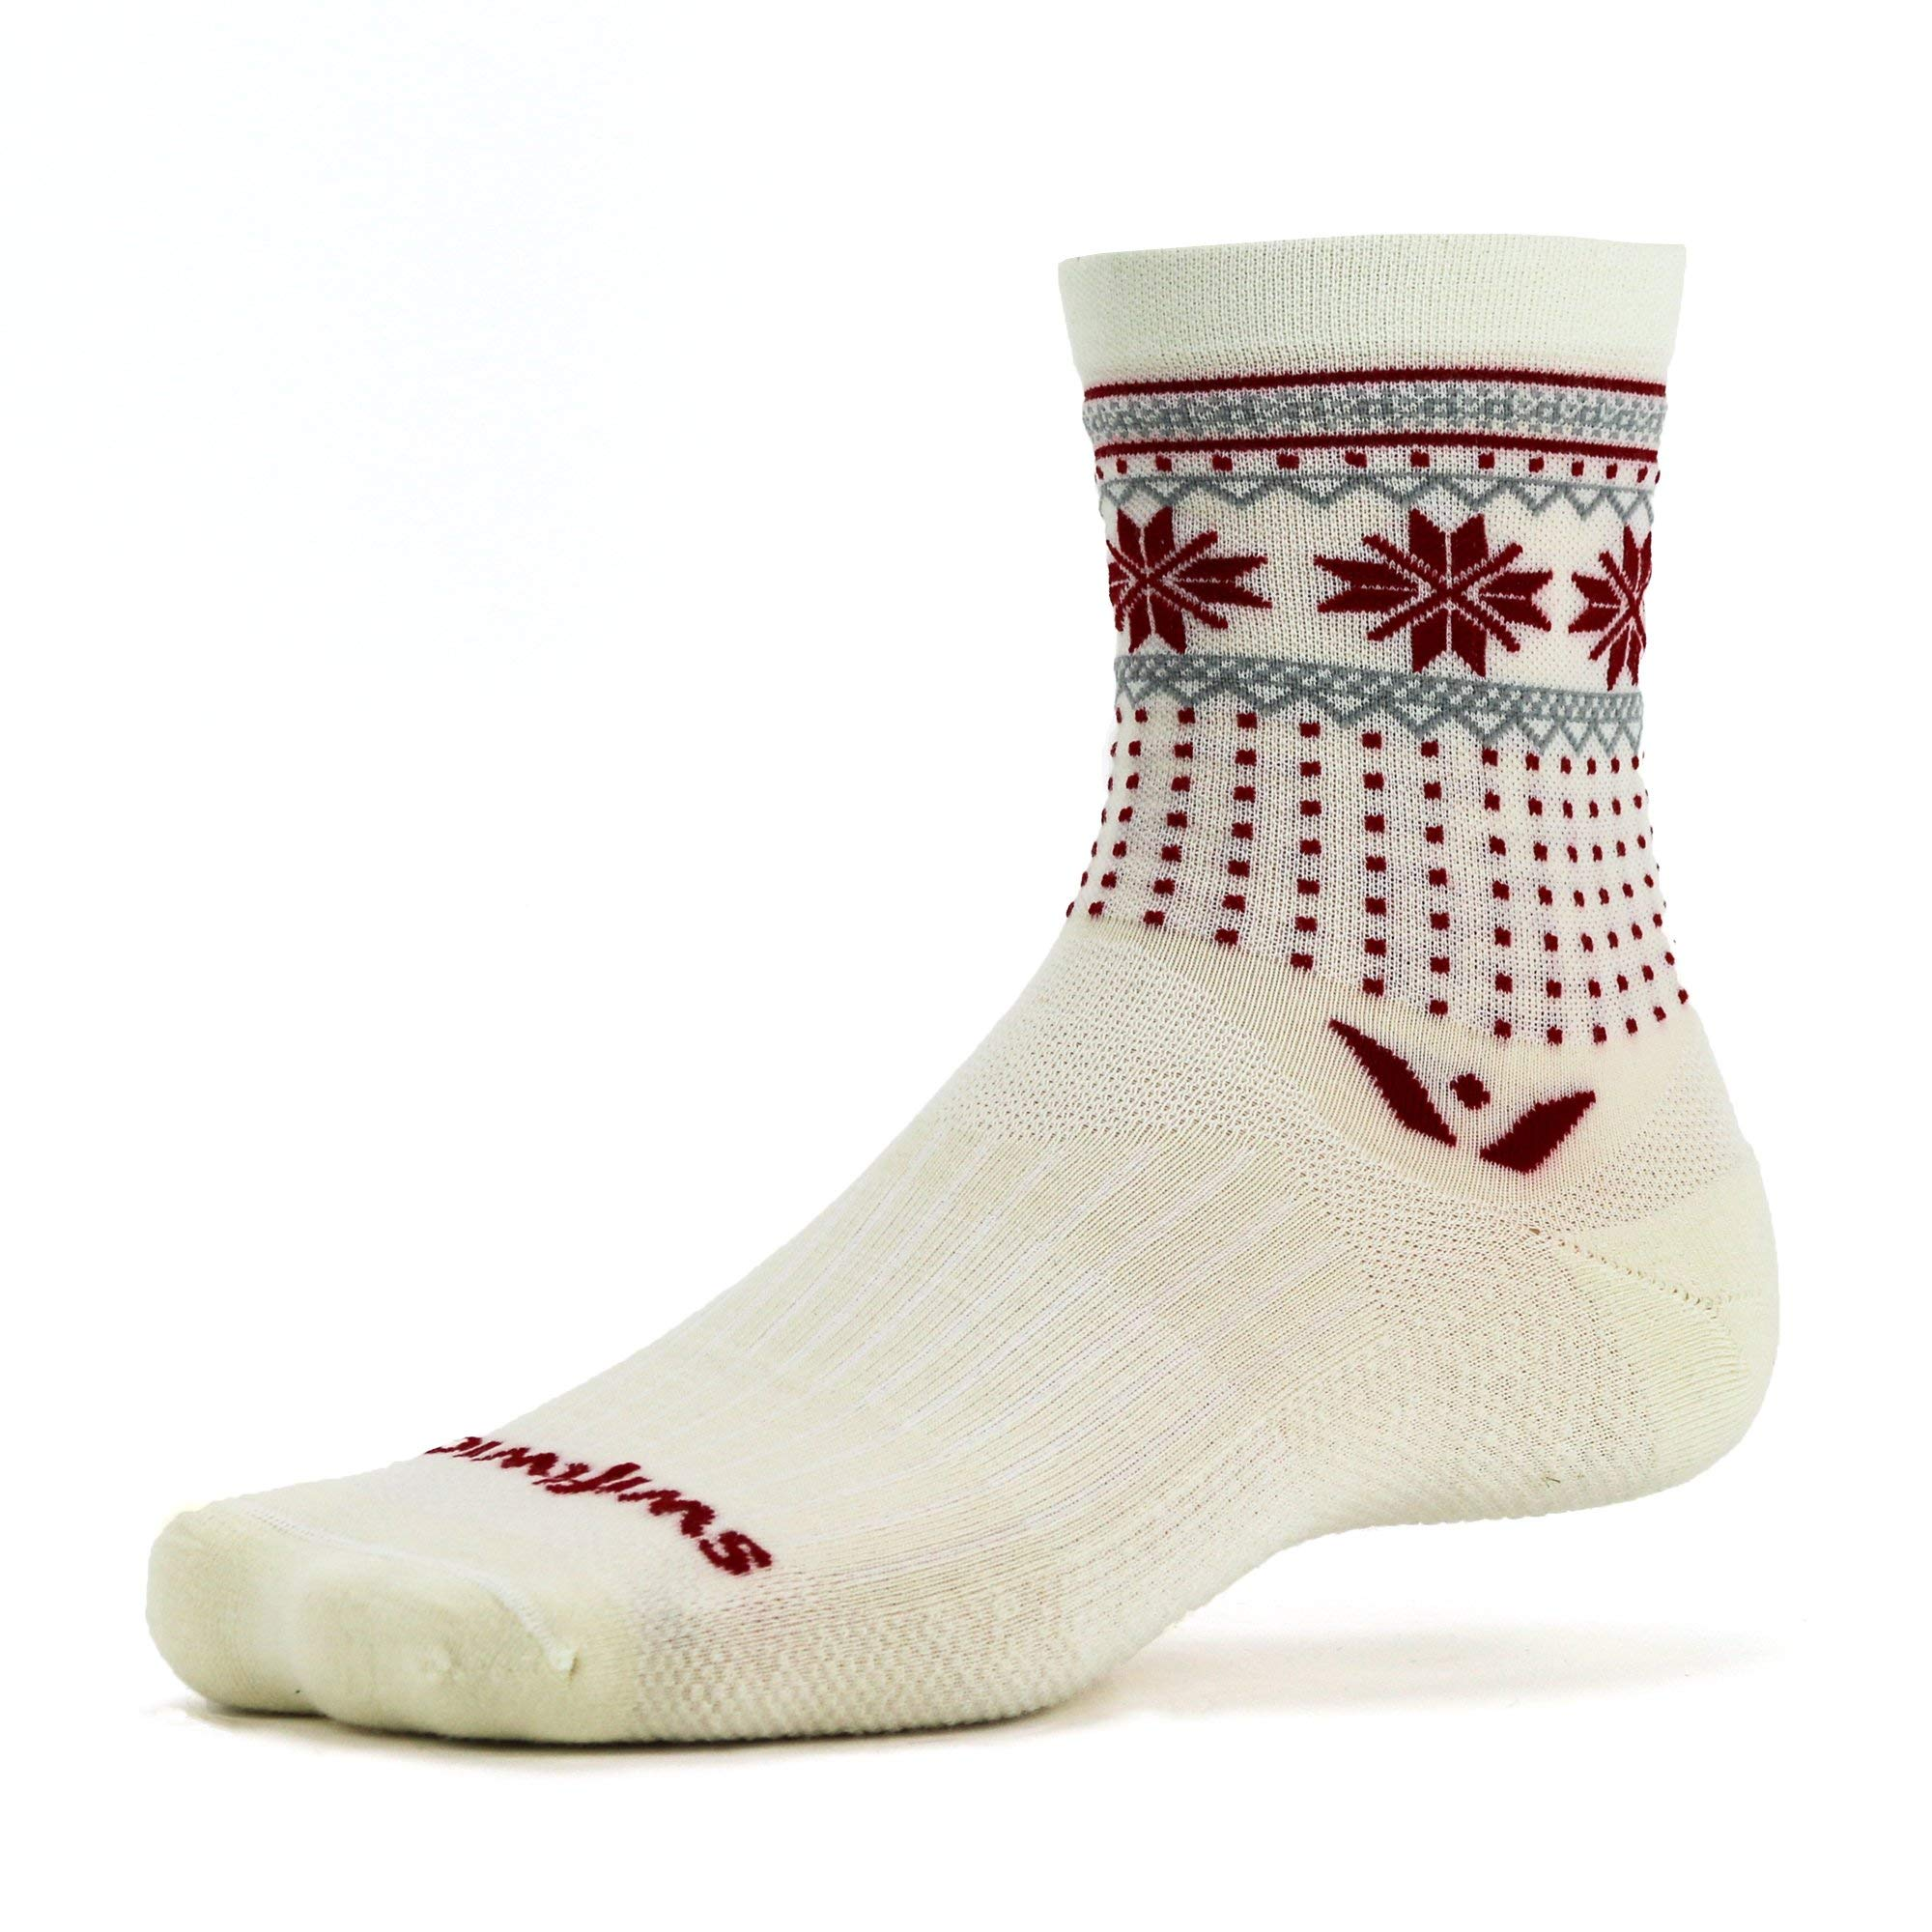 Swiftwick-VISION FIVE Limited Edition Running and Cycling Socks, Merino Wool